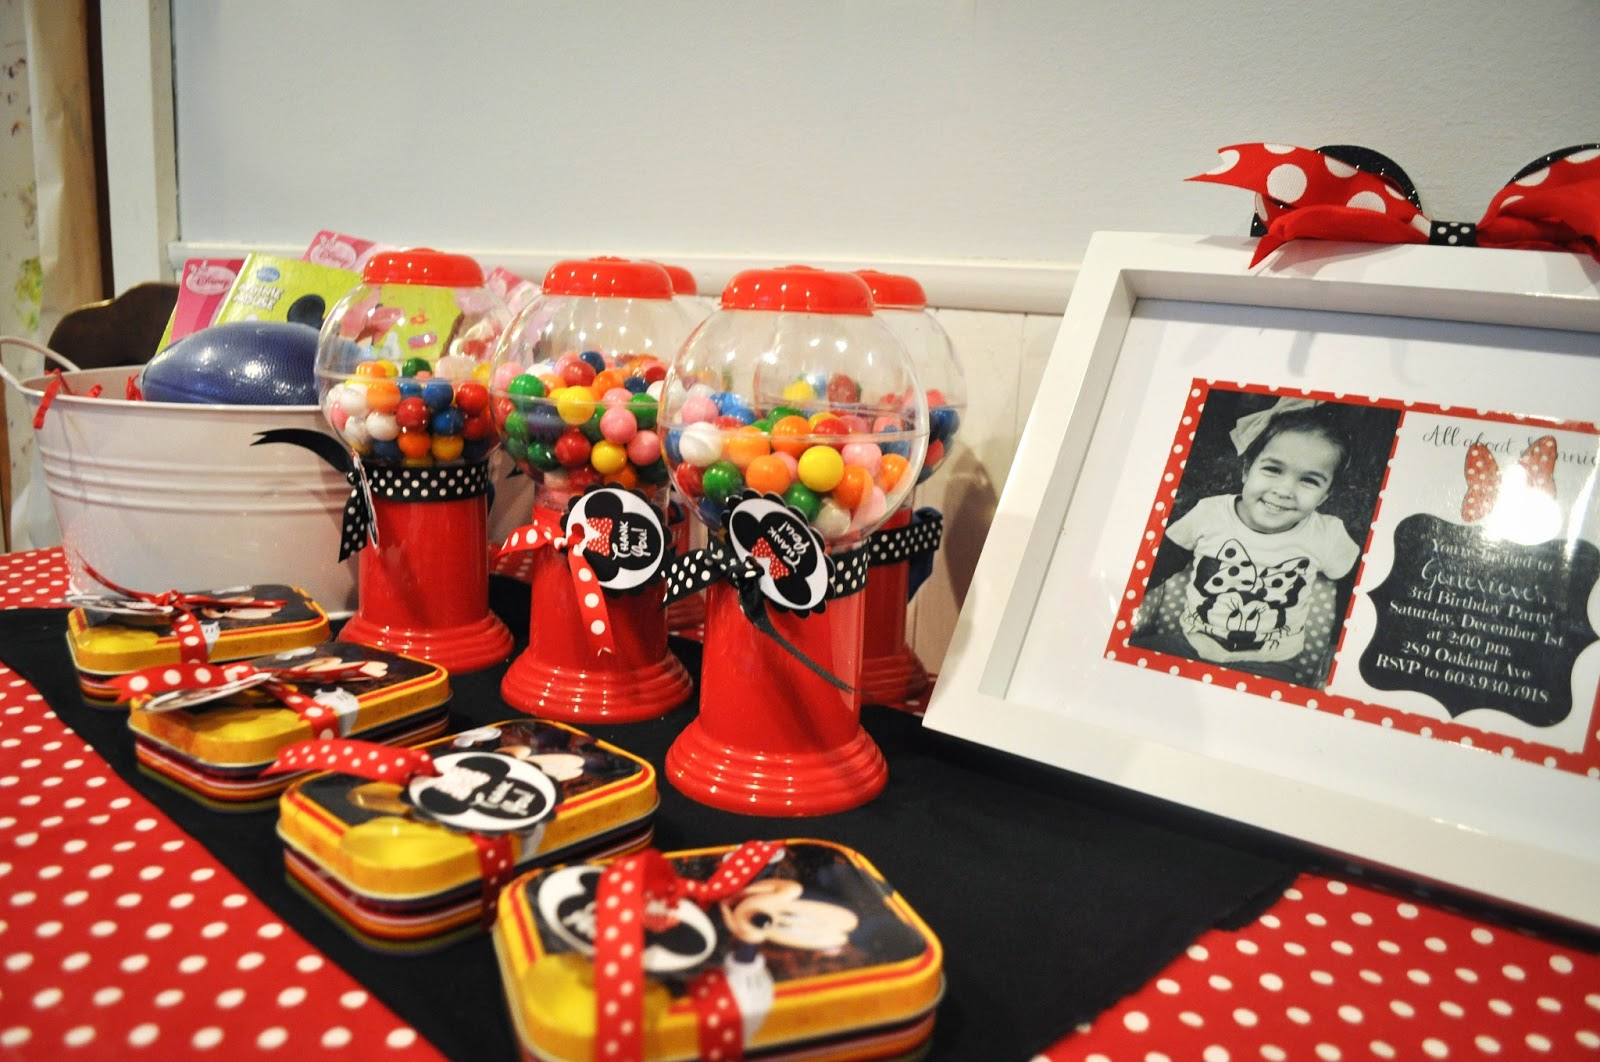 Mickey Mouse Birthday Party Favors  sc 1 st  Pretty Real & Modern Minnie Mouse Party: Decor + Favors. - Pretty Real